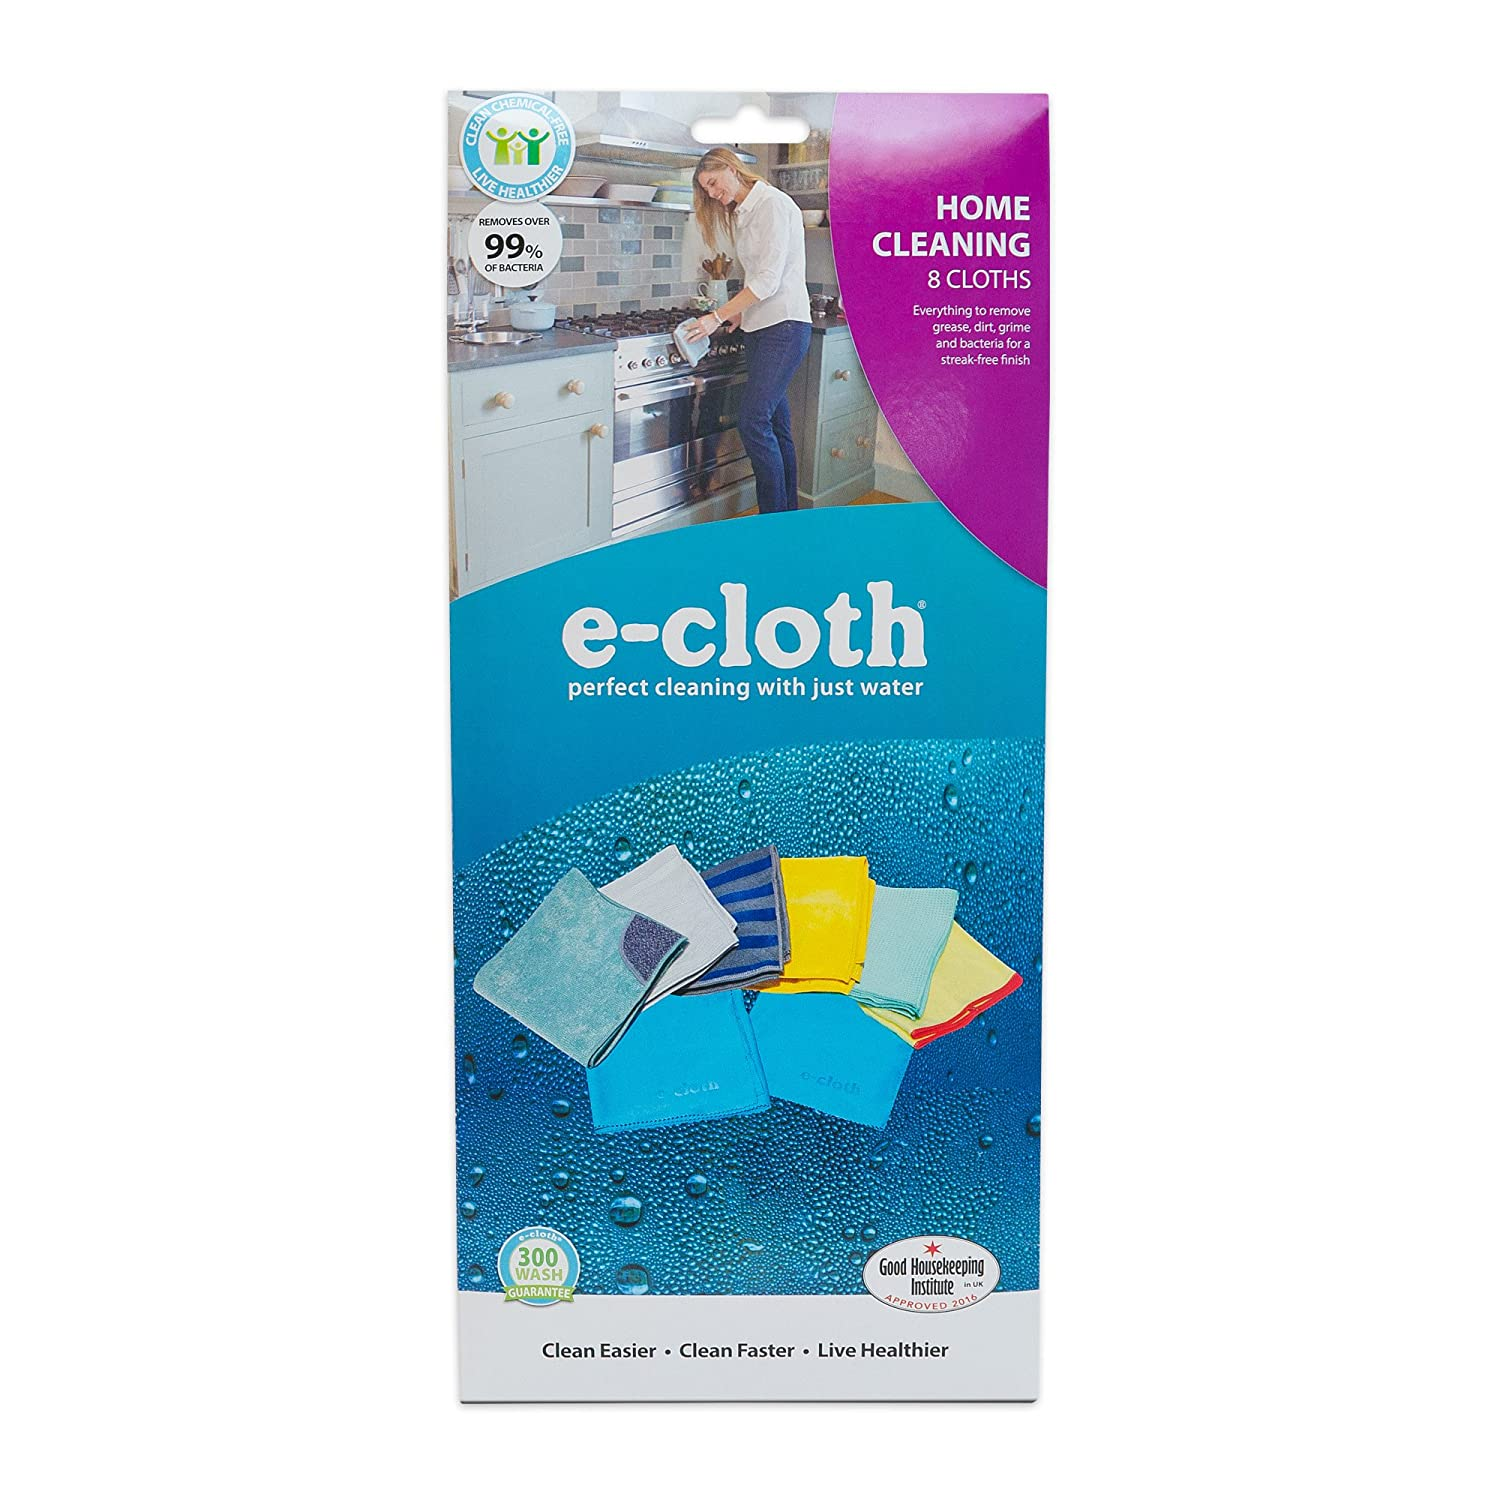 E Cloth 8 Cloth Home Cleaning Set, Perfect Chemical Free Cleaning With Just Water, 99 Percents Antibacterial by E Cloth